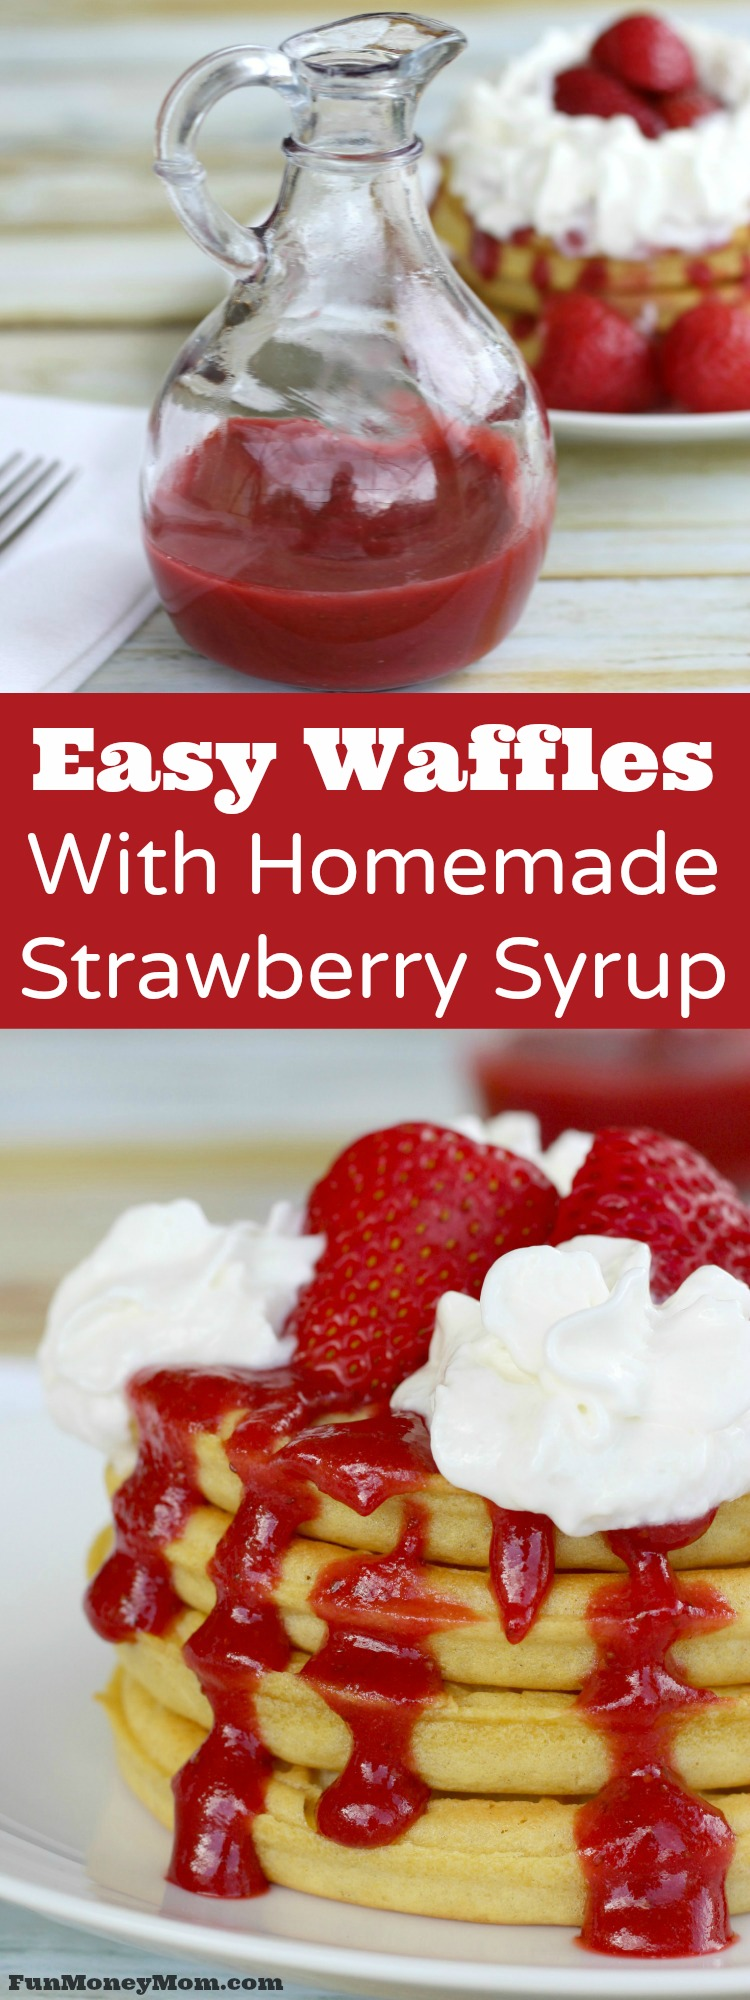 Want an easy breakfast that won't take all morning? These waffles with homemade strawberry syrup will get your day off to a great start! Make the syrup ahead of time and your waffles are ready in minutes.